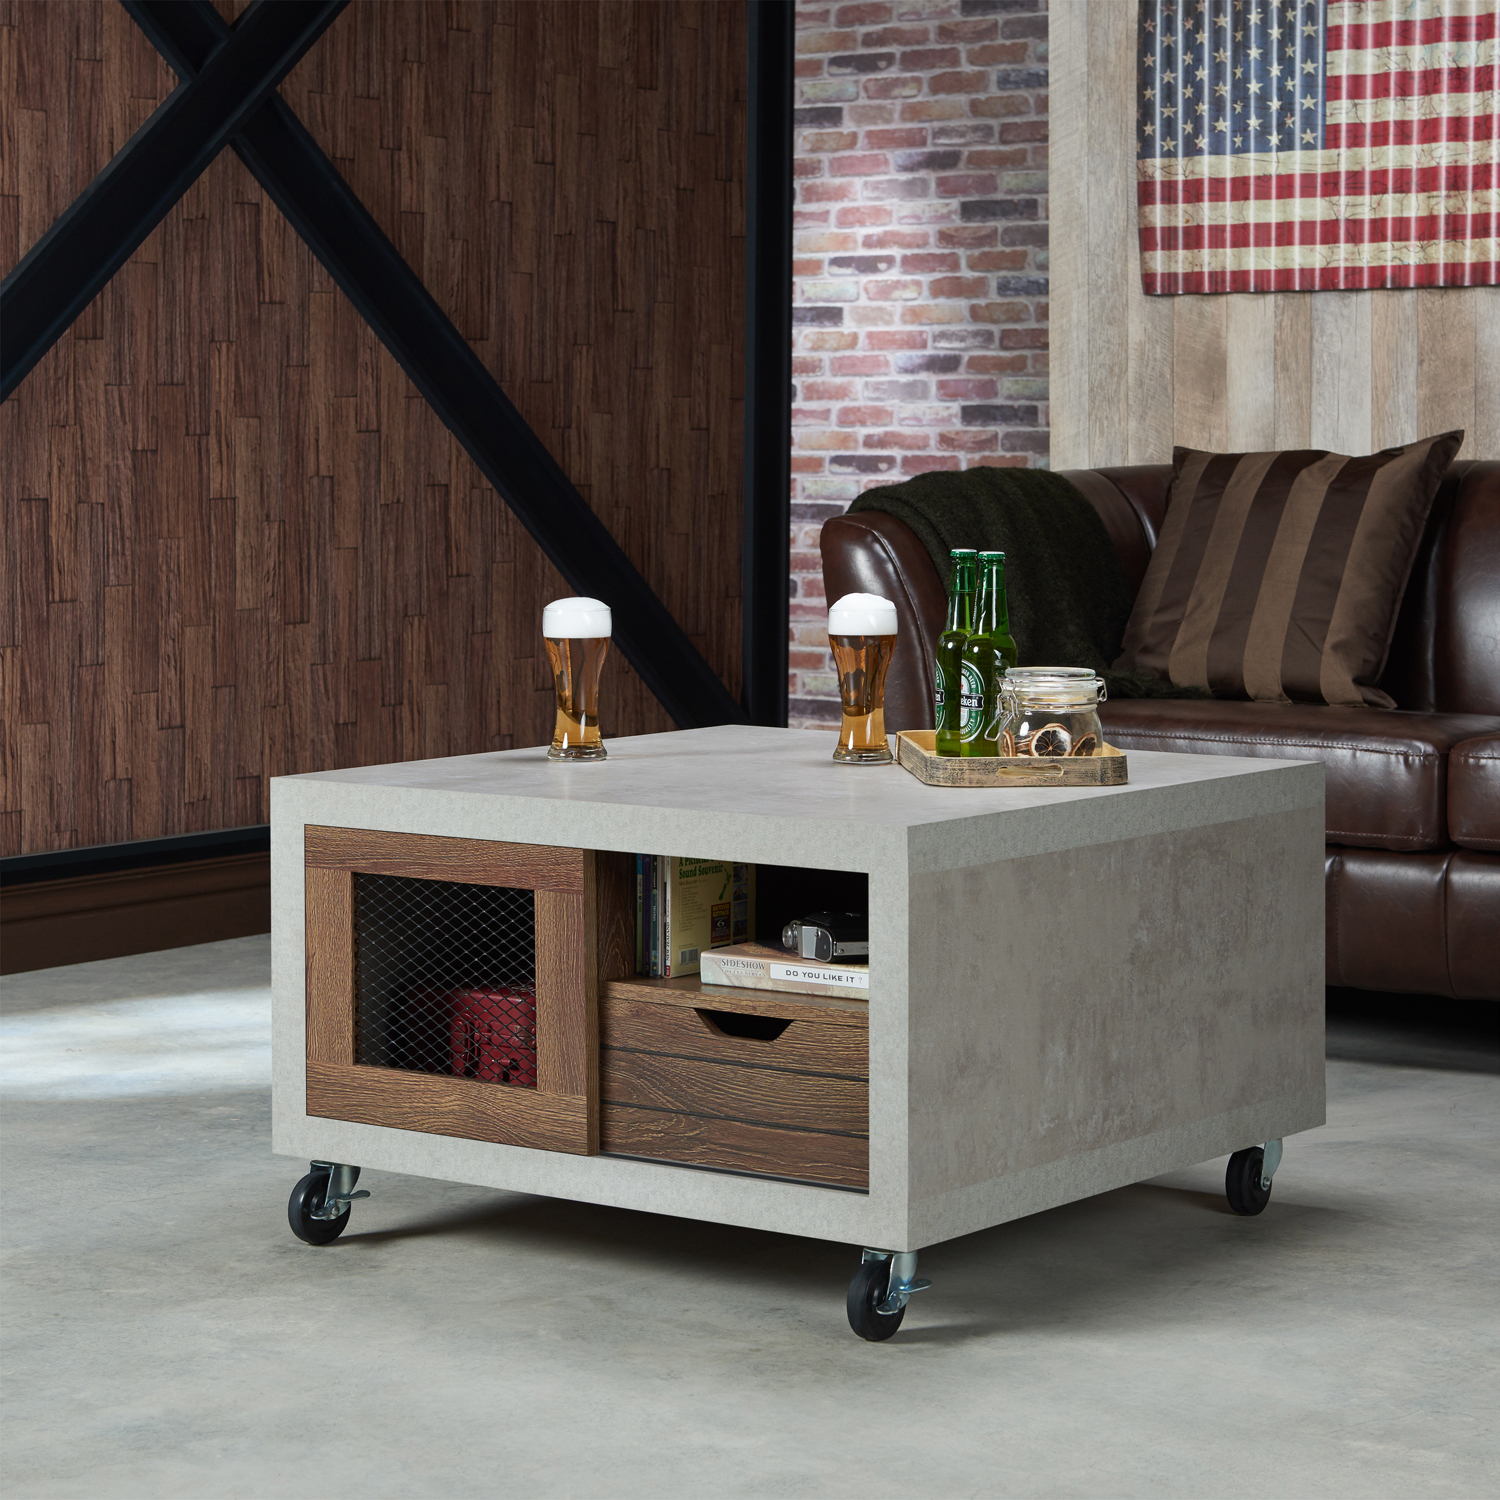 Furniture of America Greine Industrial Coffee Table, Multiple Colors